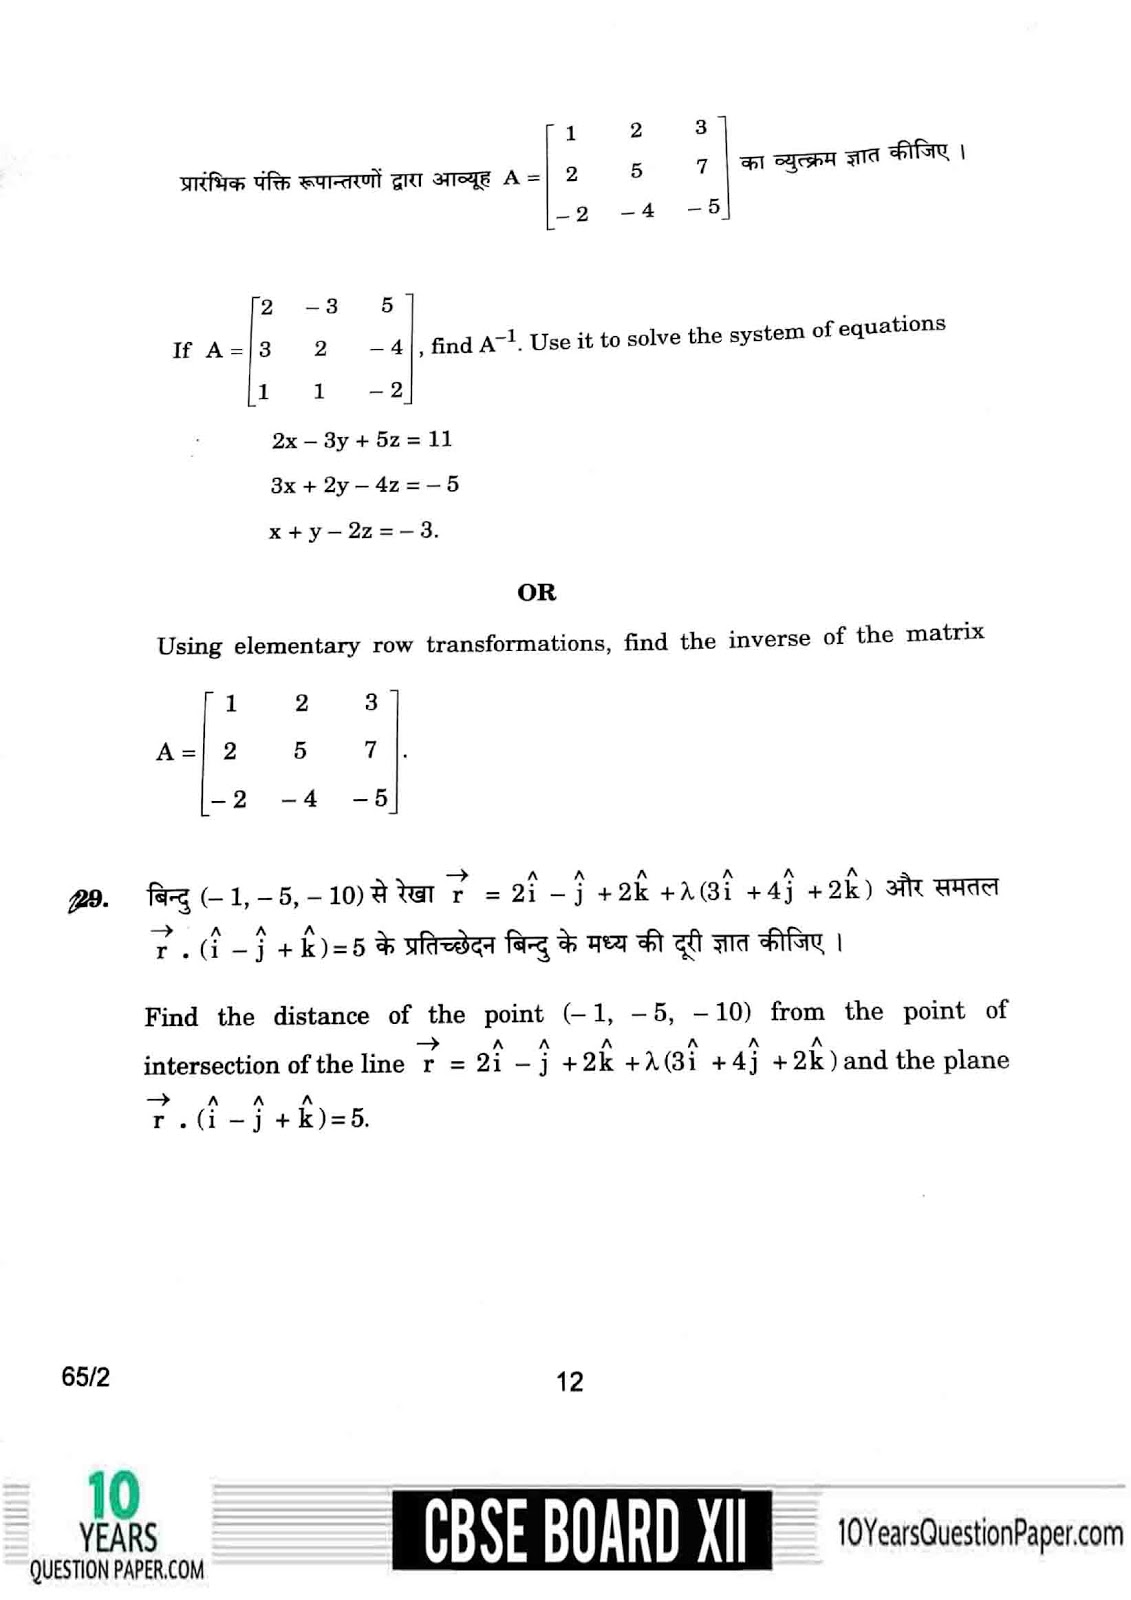 CBSE class 12 Maths 2018 question paper page-11